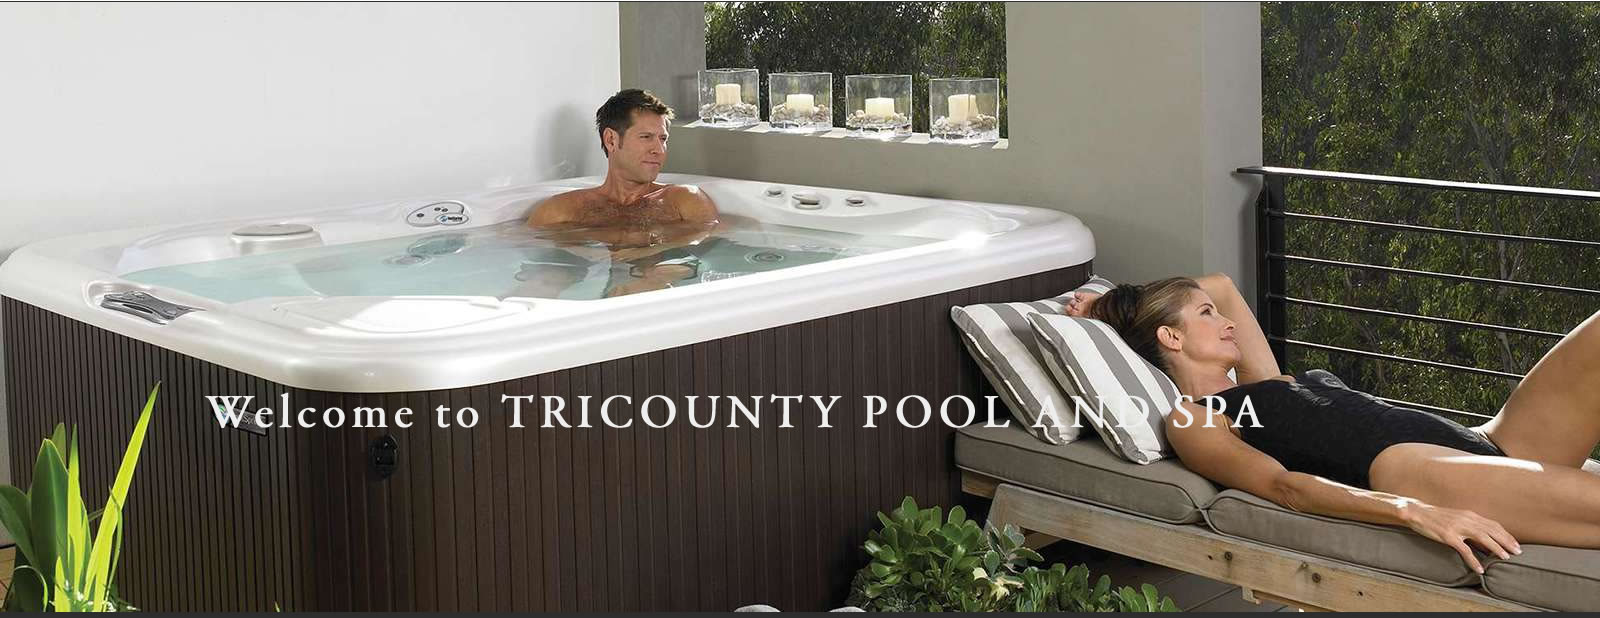 Welcome To Tricounty Pool and Spa